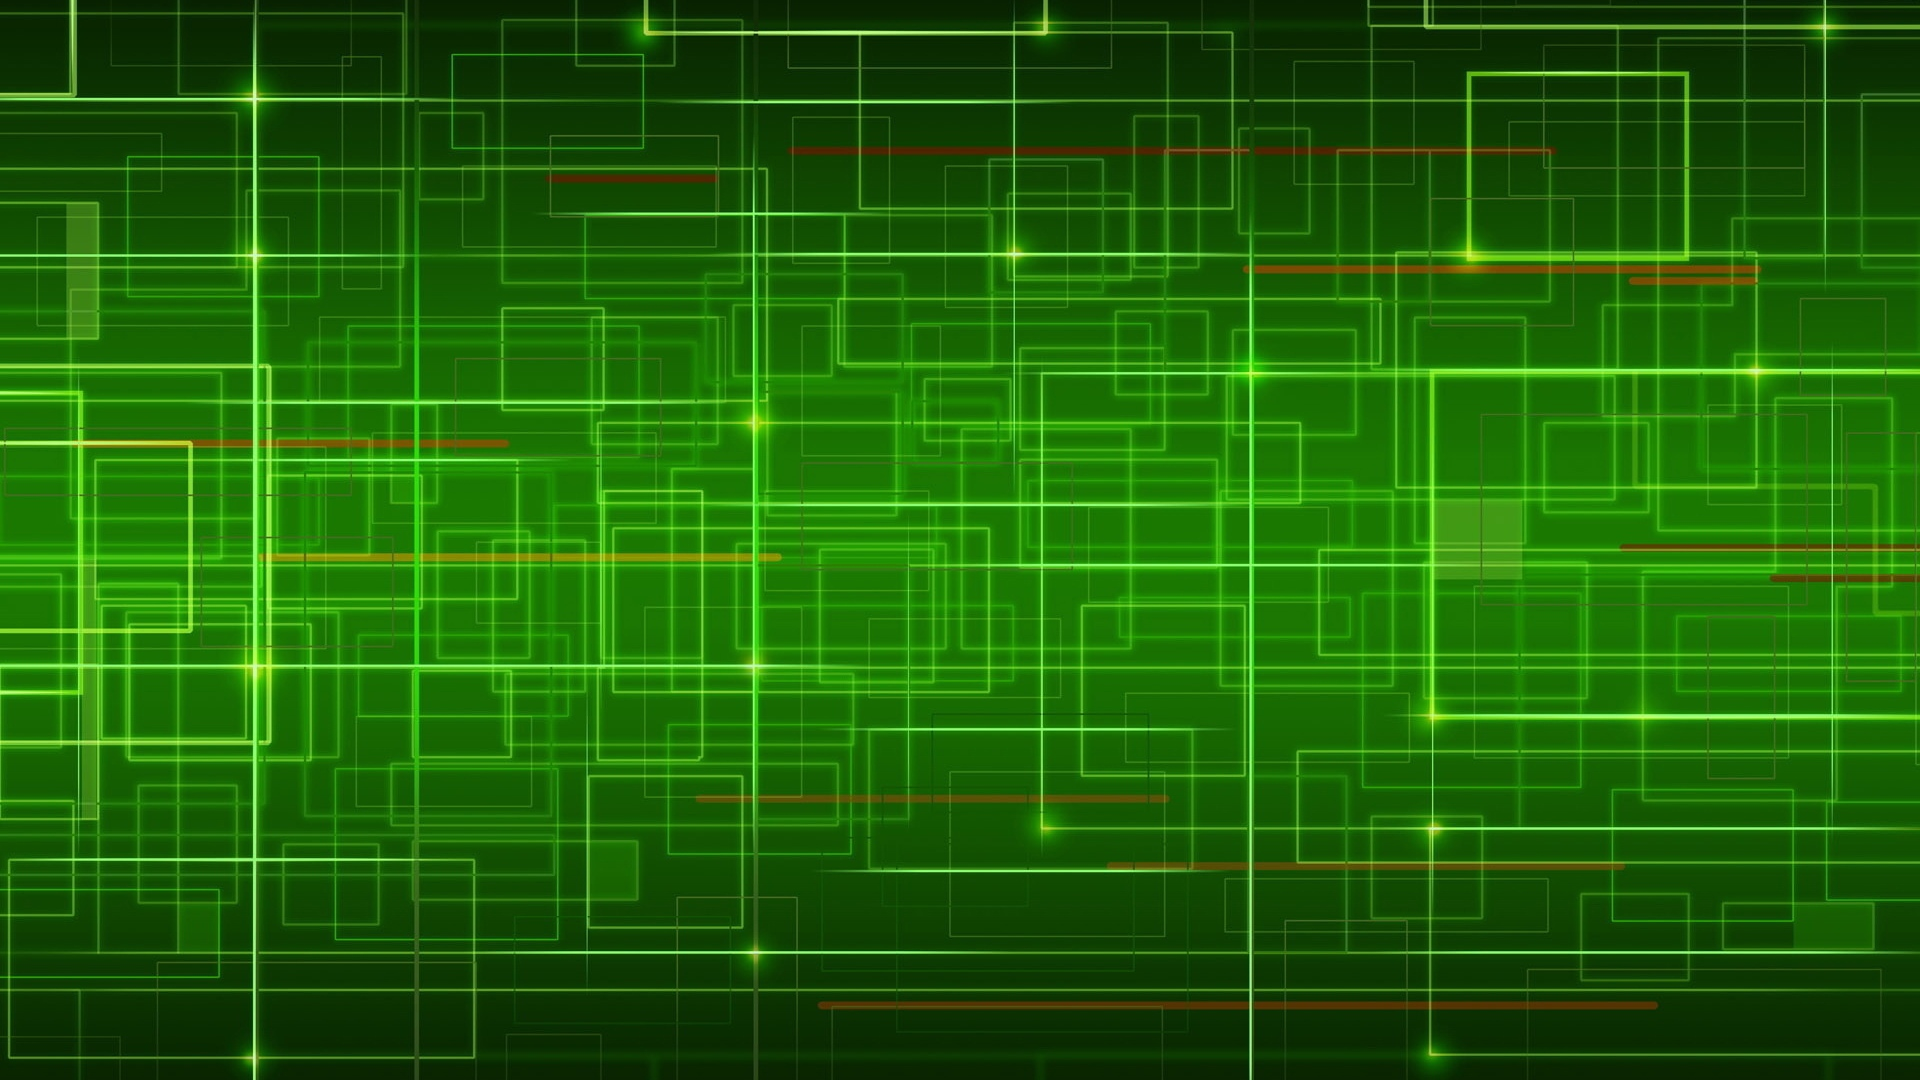 grid-system-green-cells-form-1920x1080-1920%C3%971080-wallpaper-wp3806109